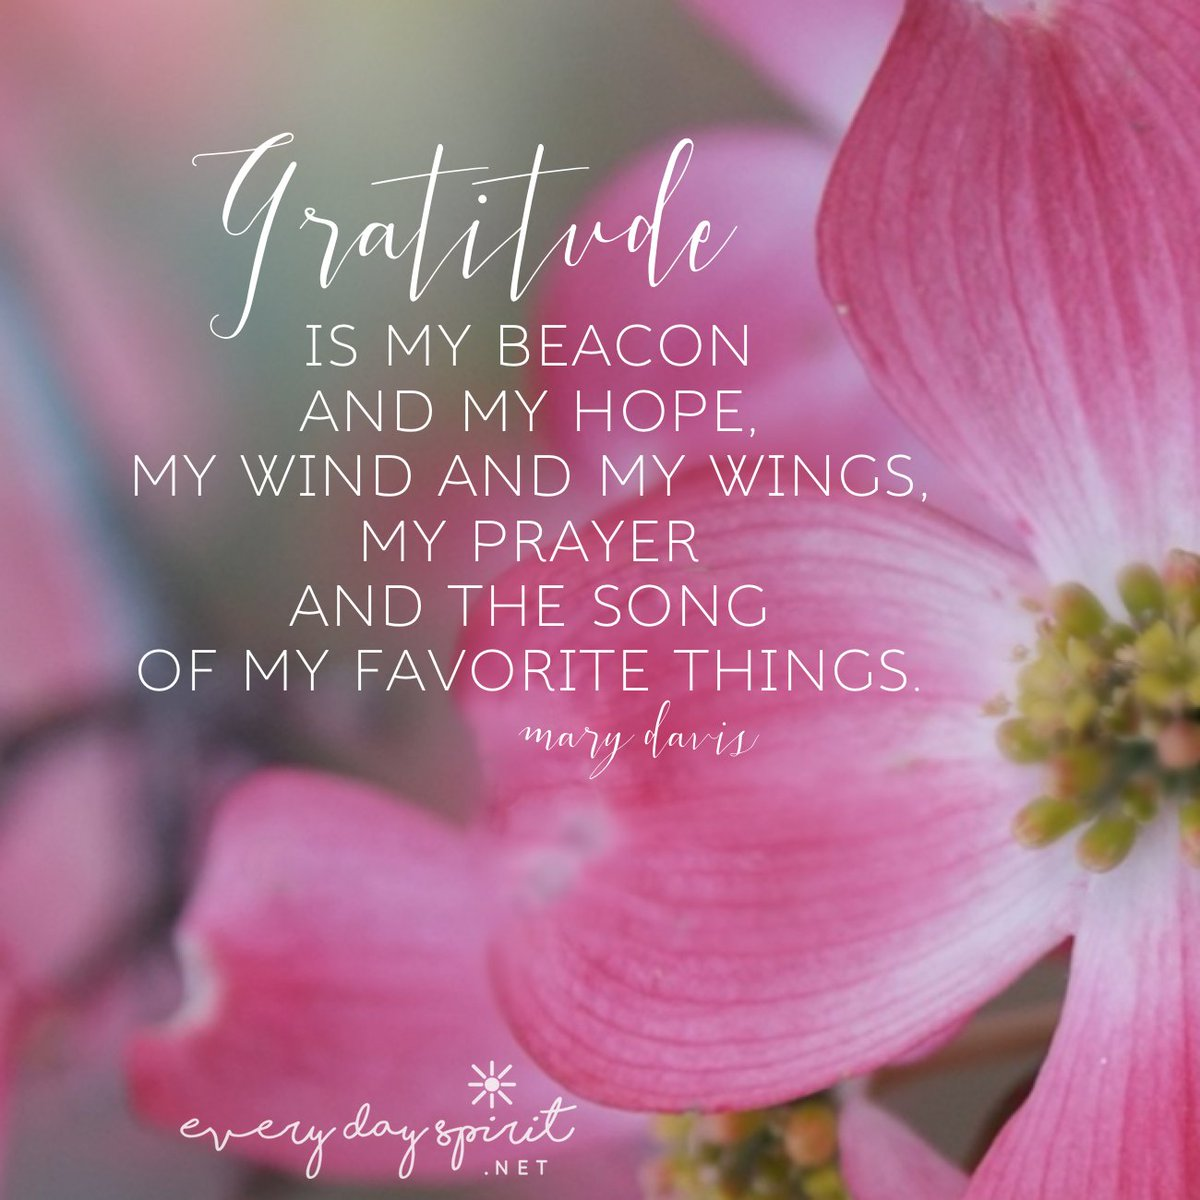 Walk on the path of contentment with gratitude in your heart and soul.  #JoyTrain #Thanksgiving #gratitude  xo  http://www. everydayspirit.net  &nbsp;   xo<br>http://pic.twitter.com/dA0VV6tnyY